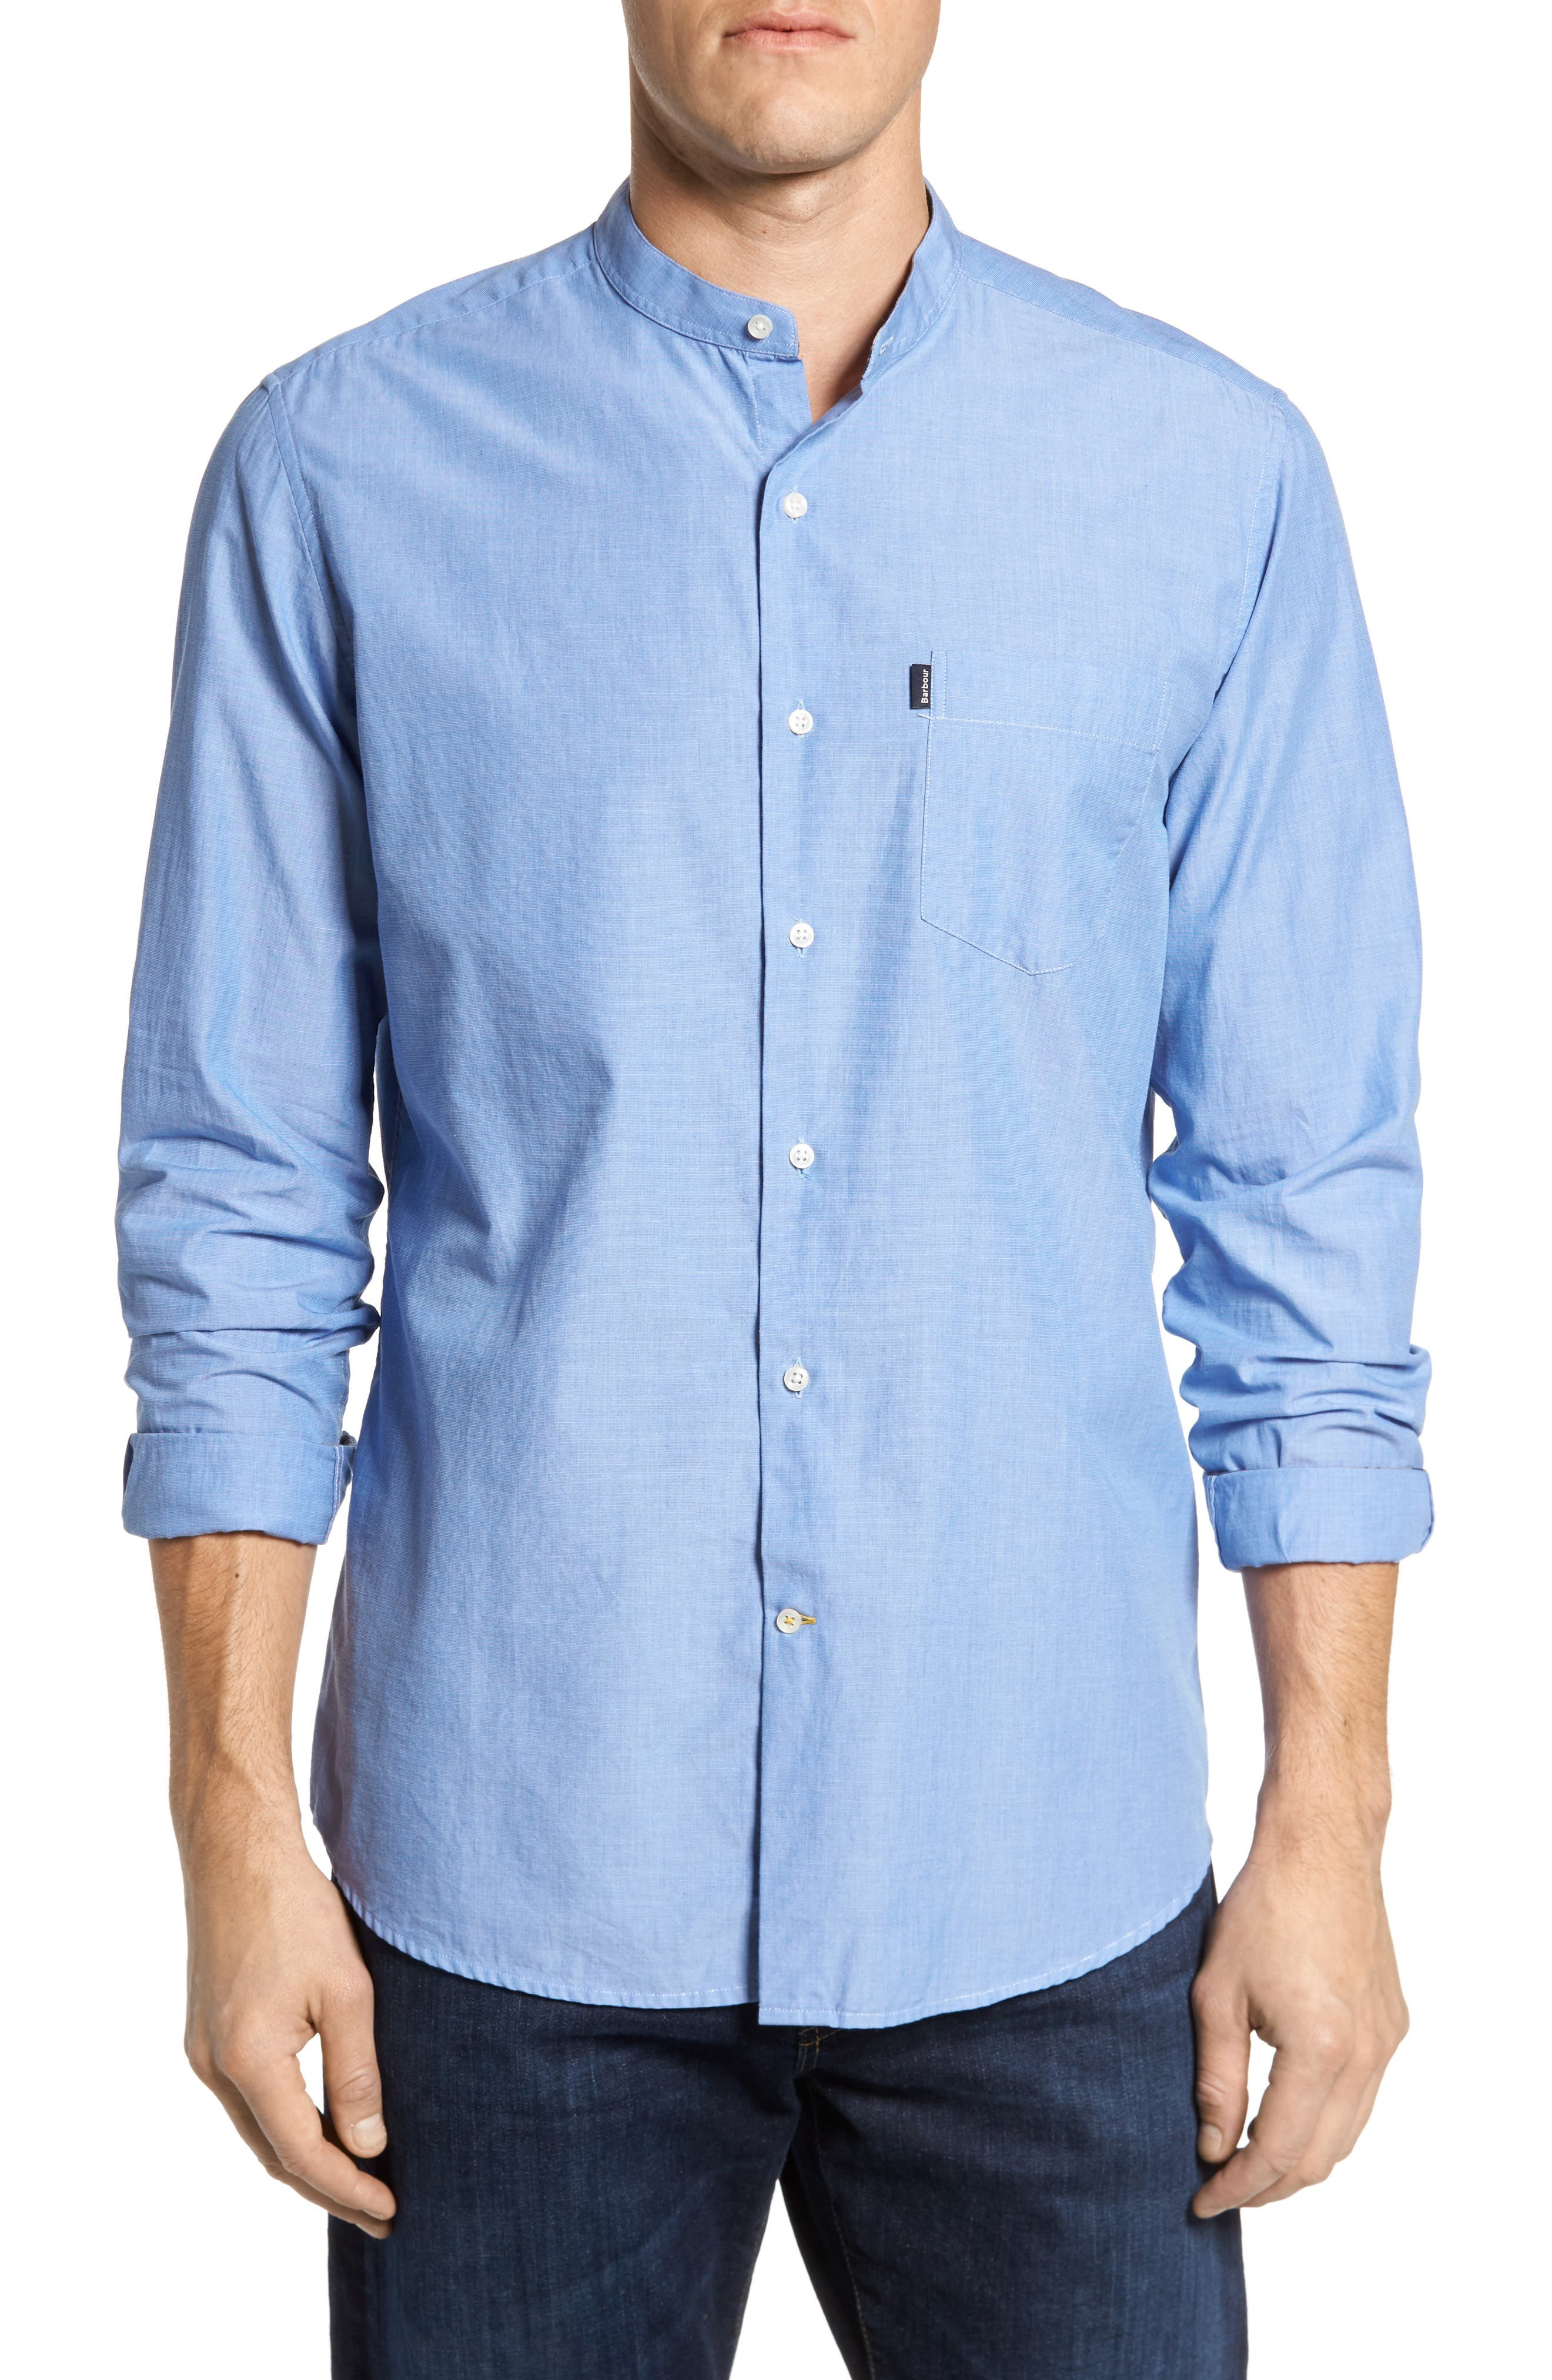 Main Image - Barbour Fairfield Tailored Fit Sport Shirt